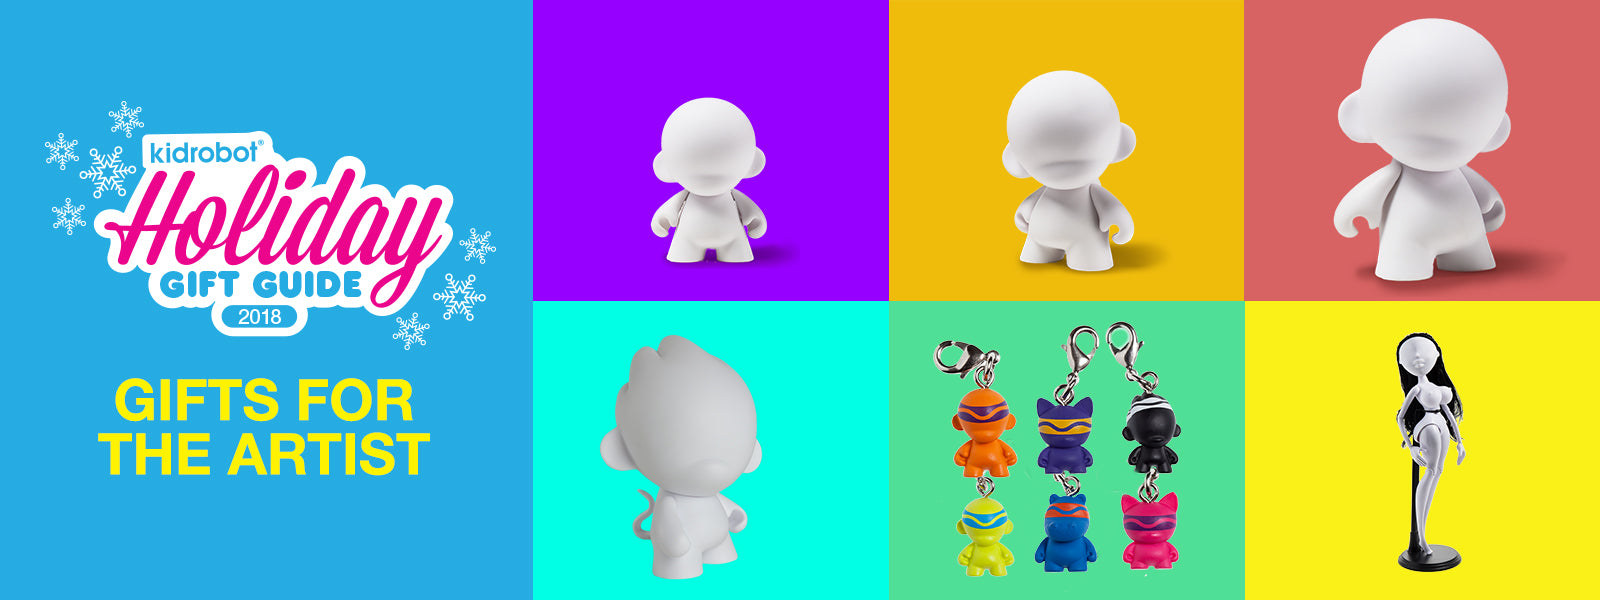 Kidrobot Holiday Gift Guide 2018: Gifts for the Artist